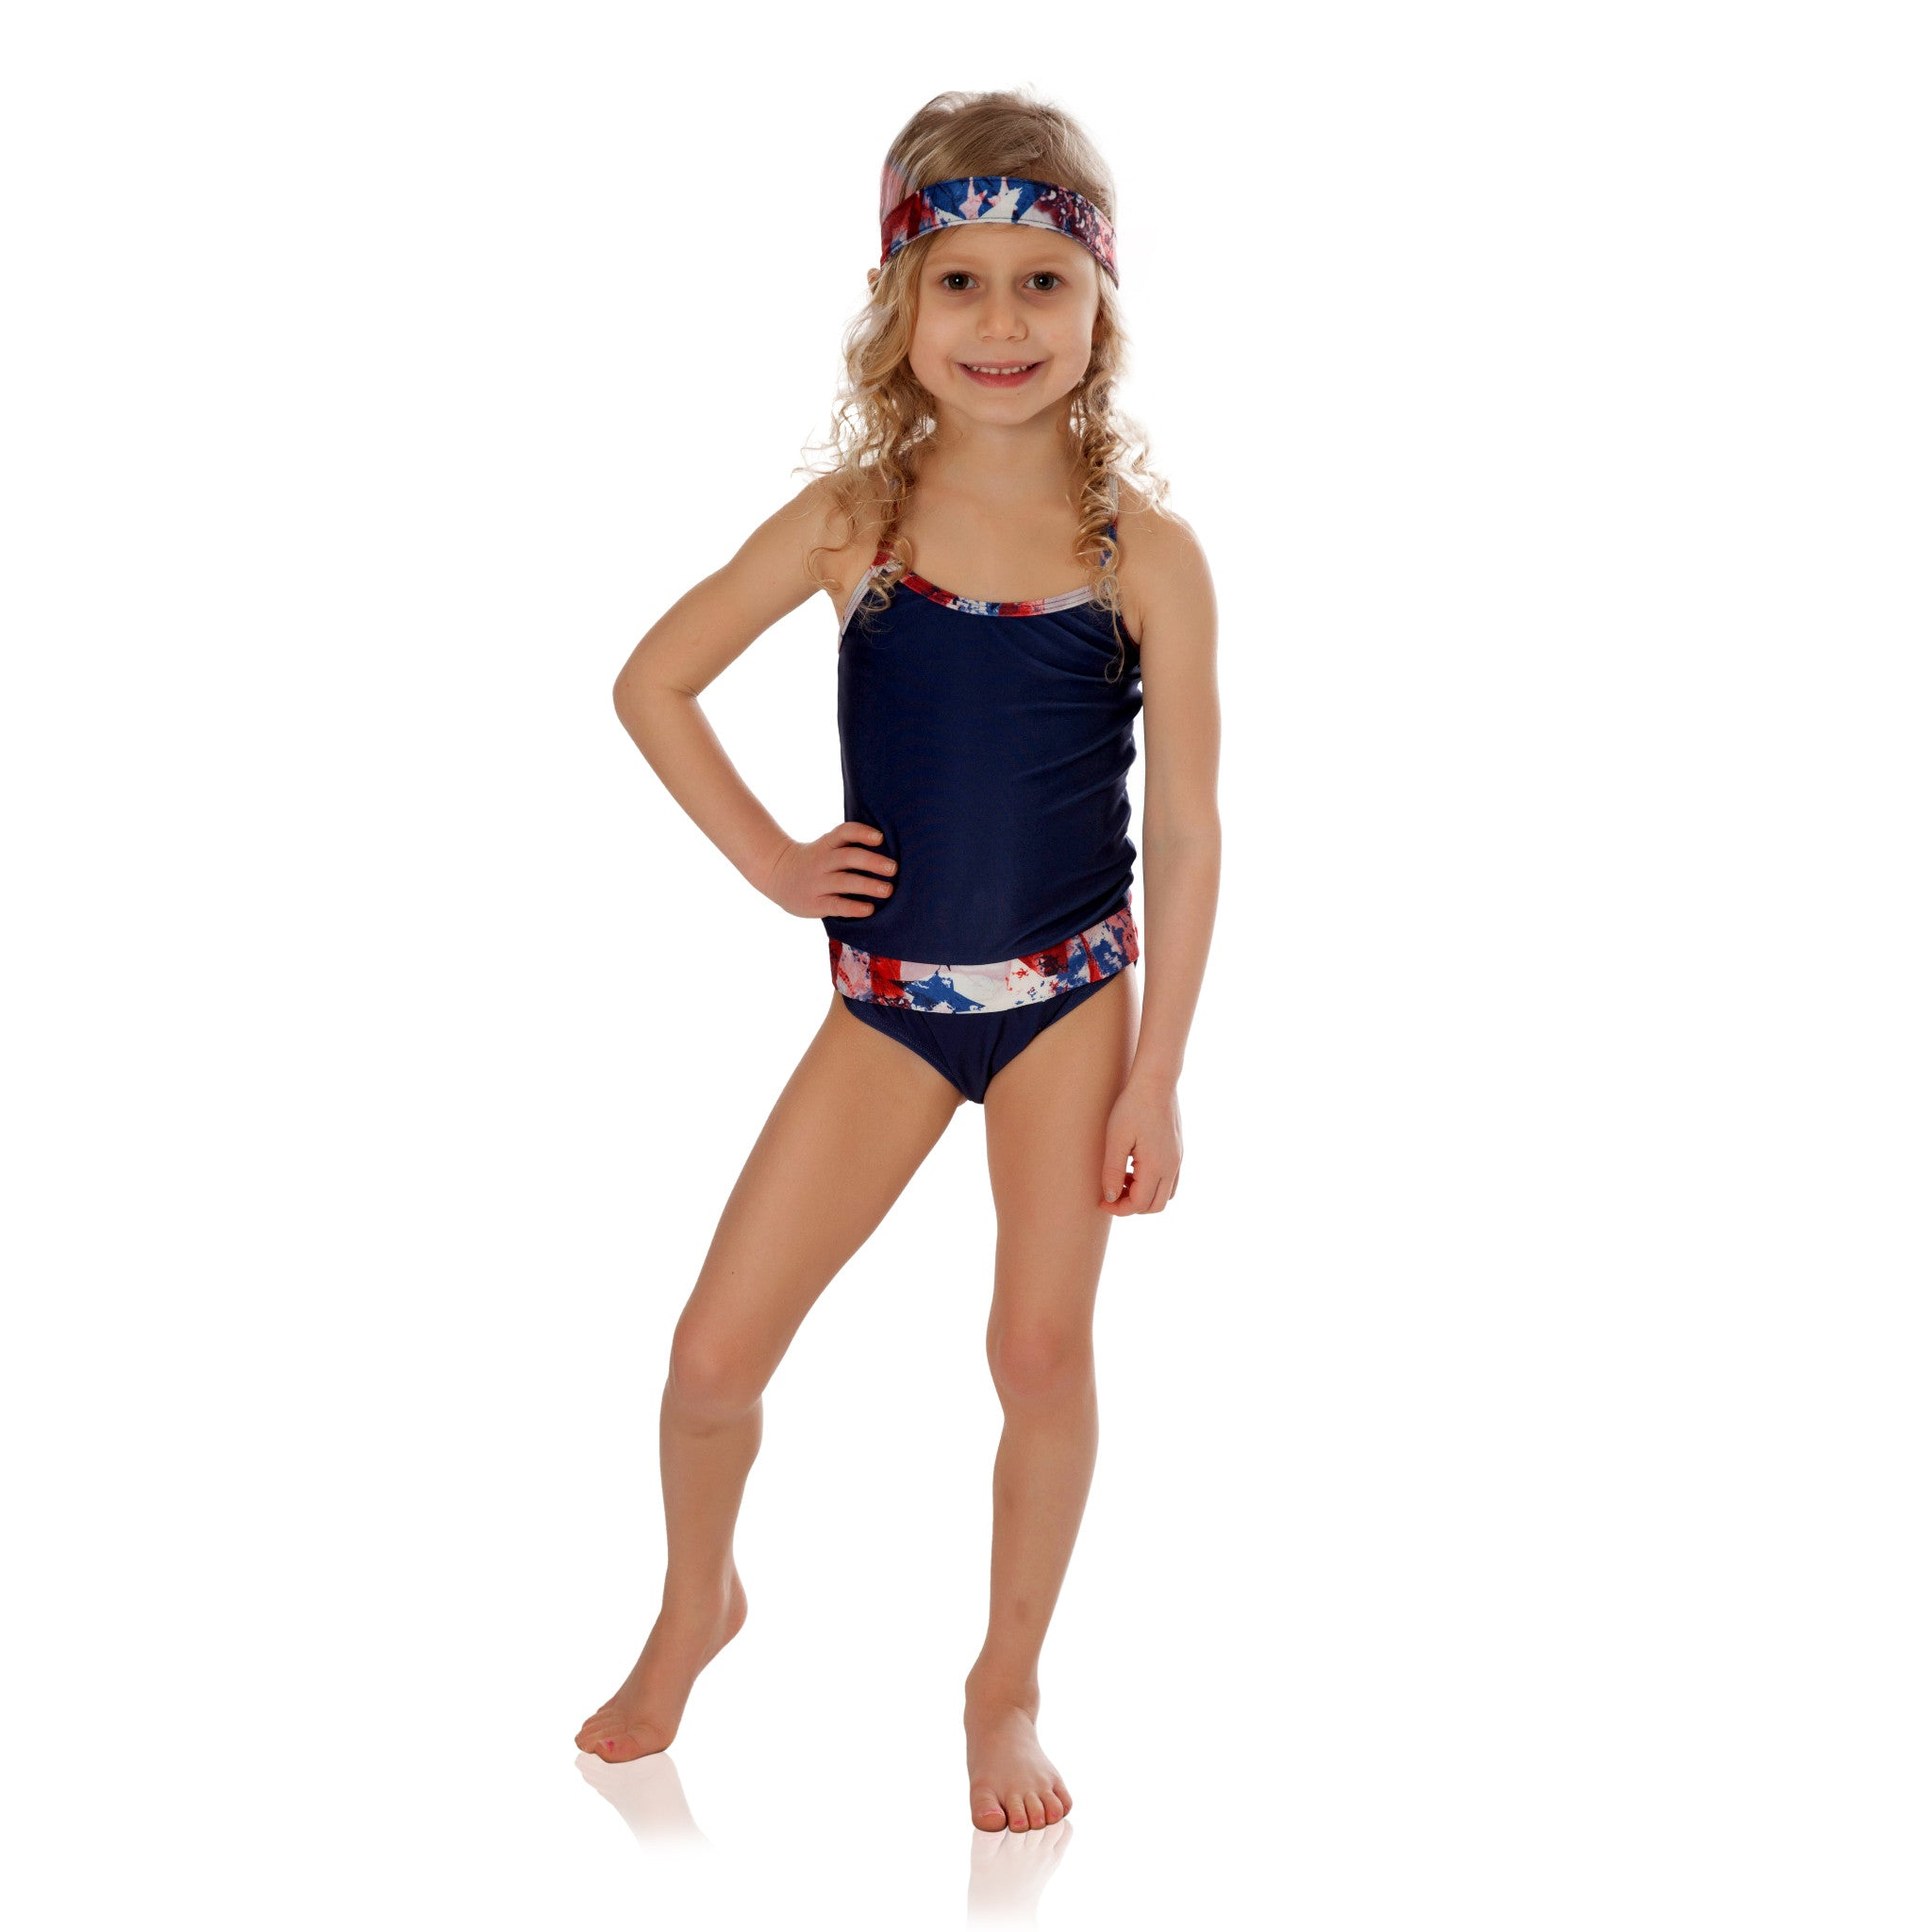 Indigo with Americana Bathing Suit